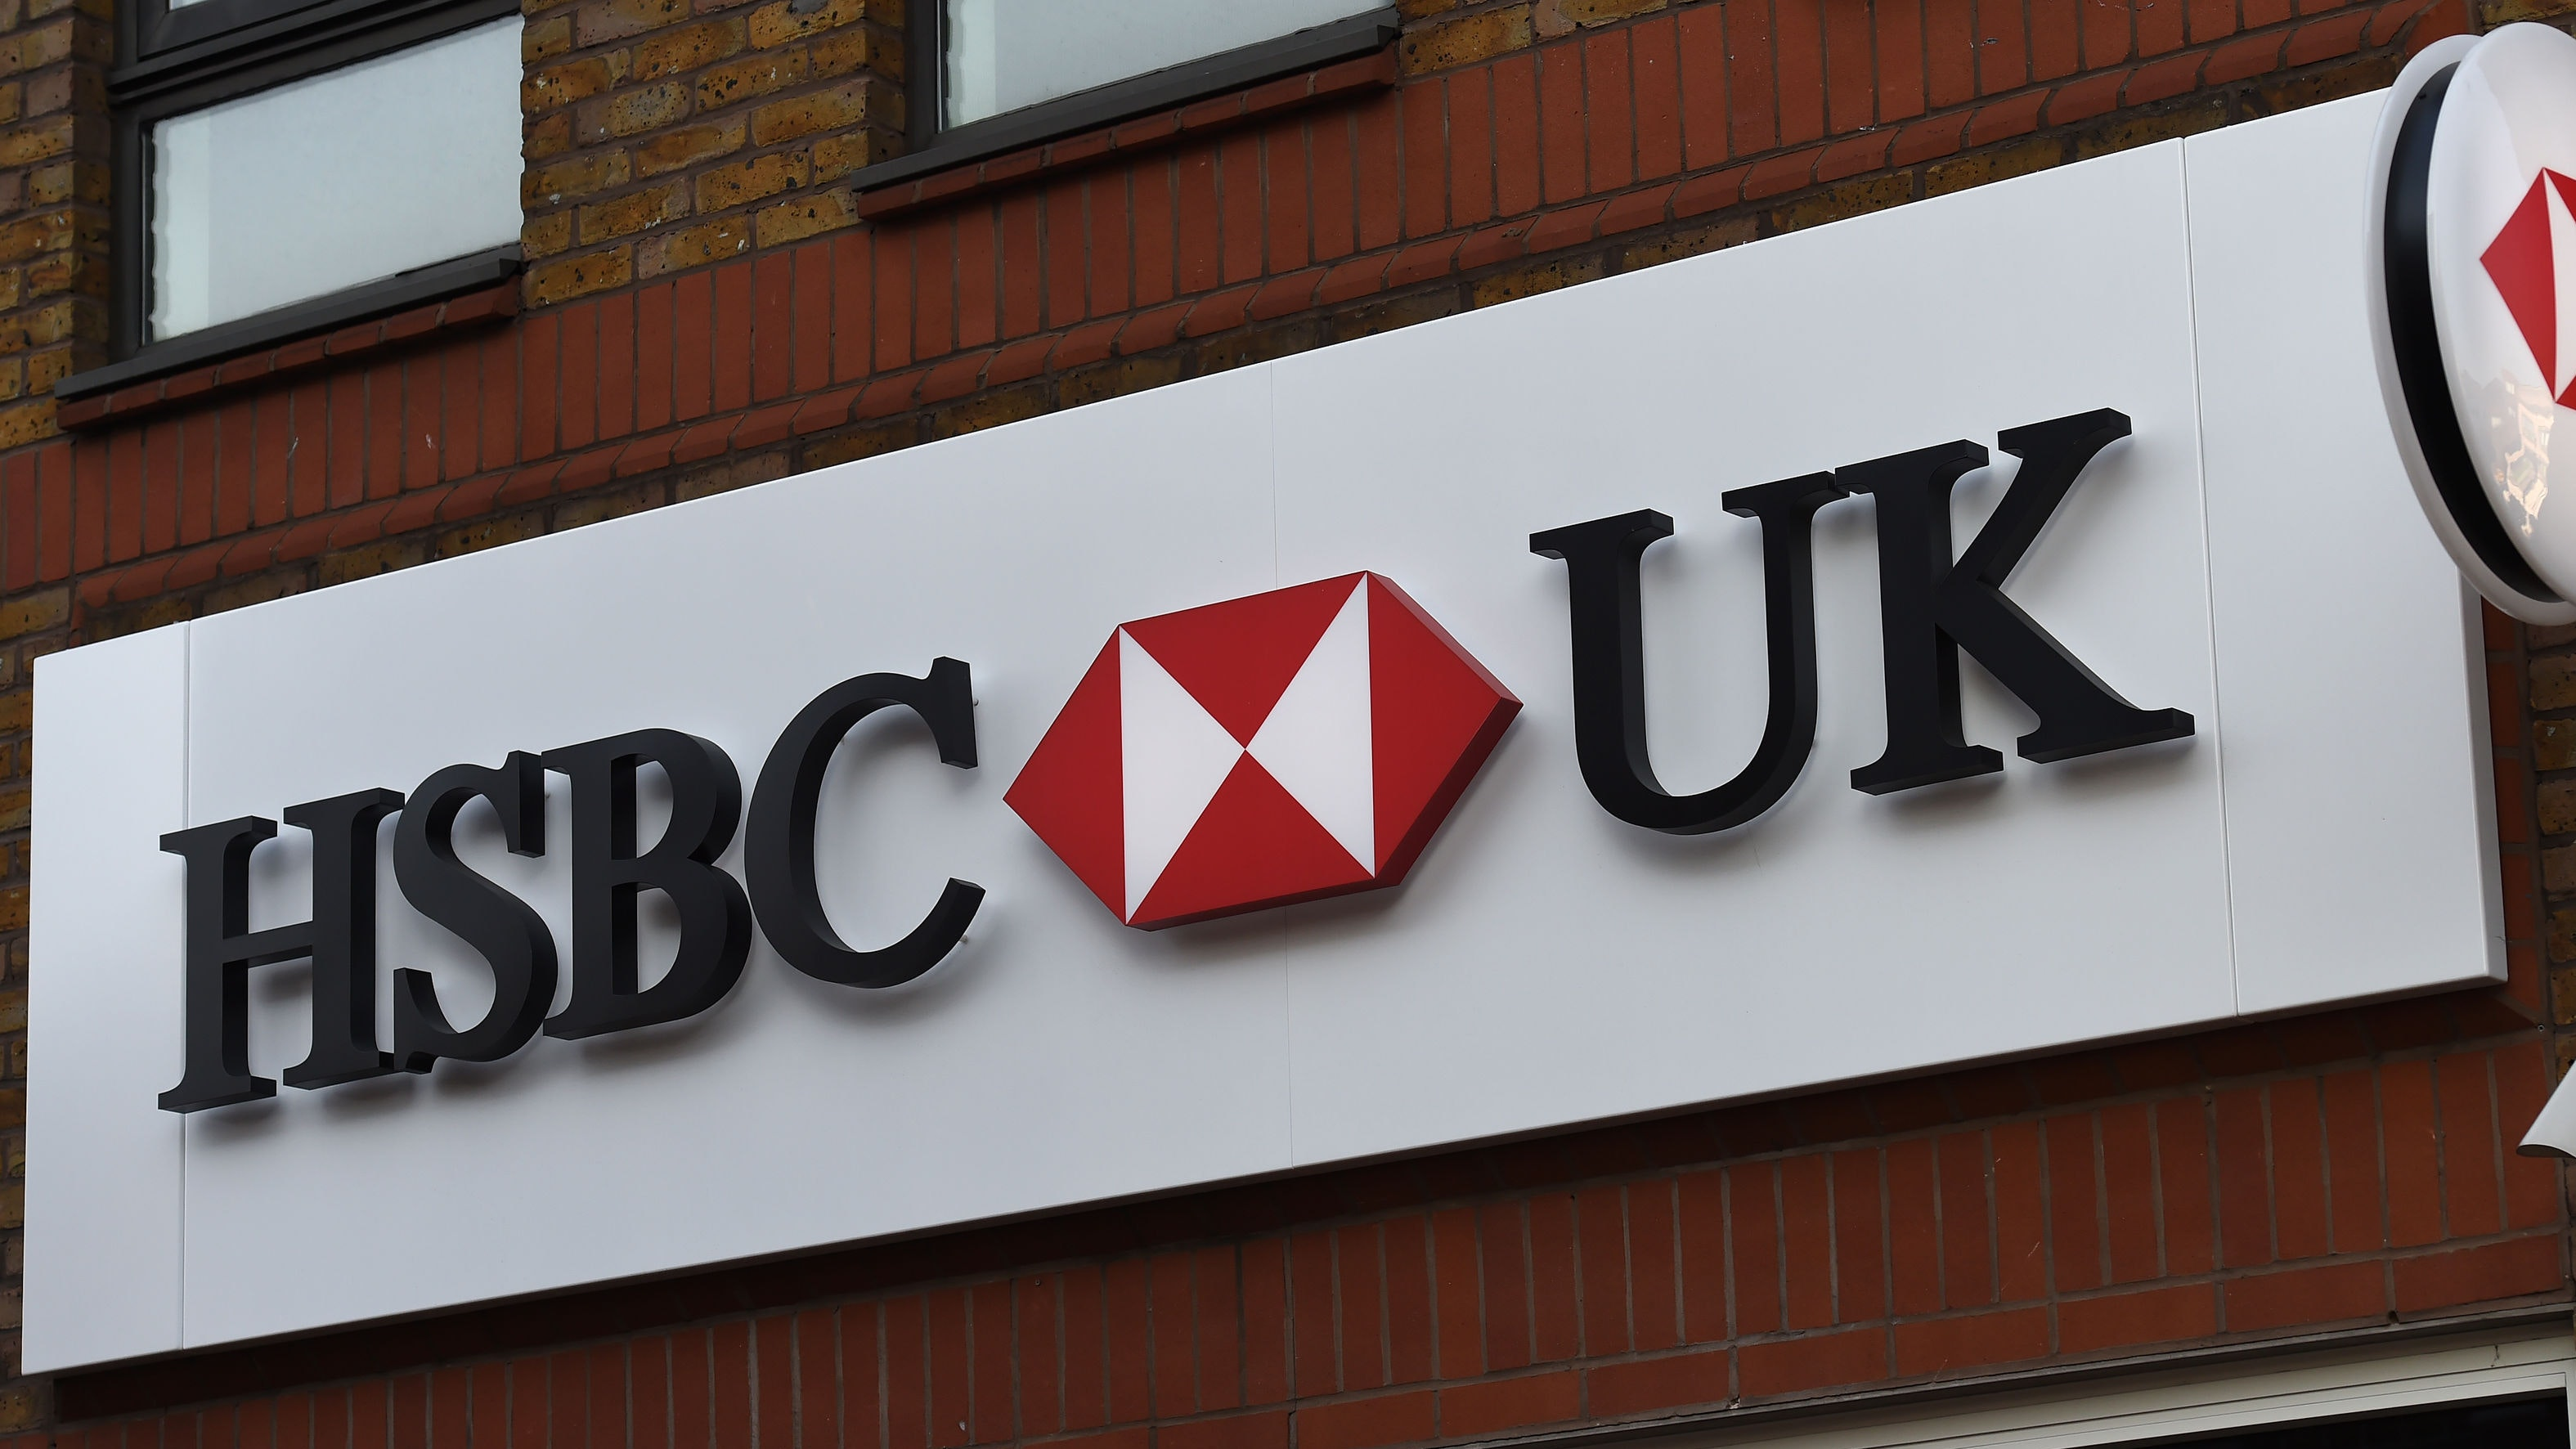 HSBC's voice recognition technology has saved bank £300